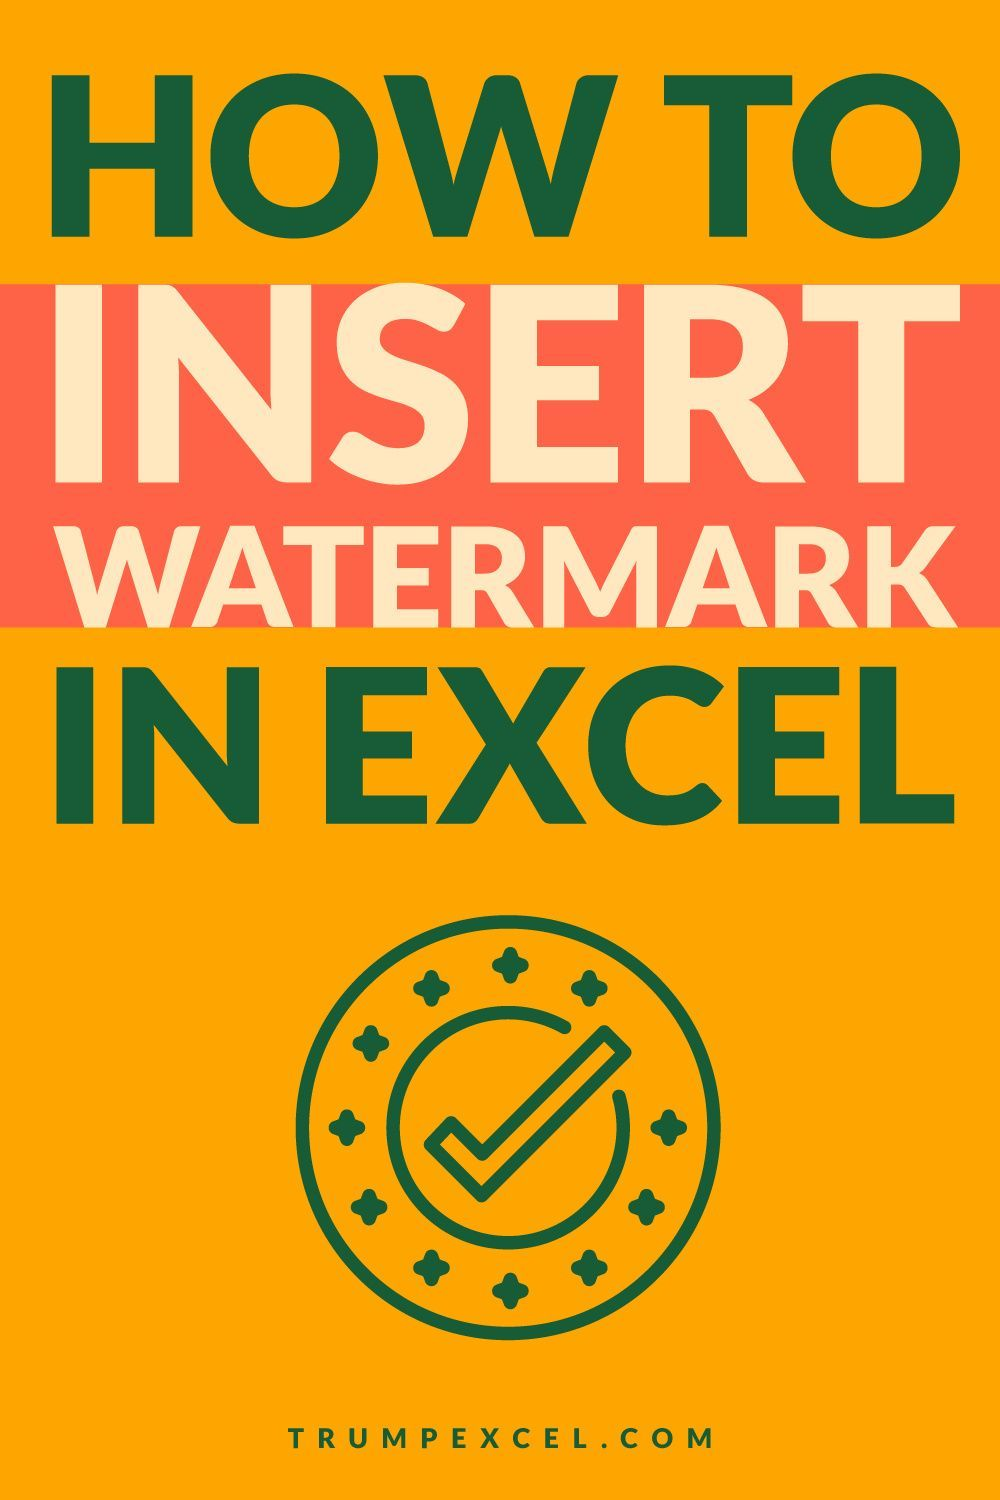 How to Insert a Watermark in Excel (a Step-by-step